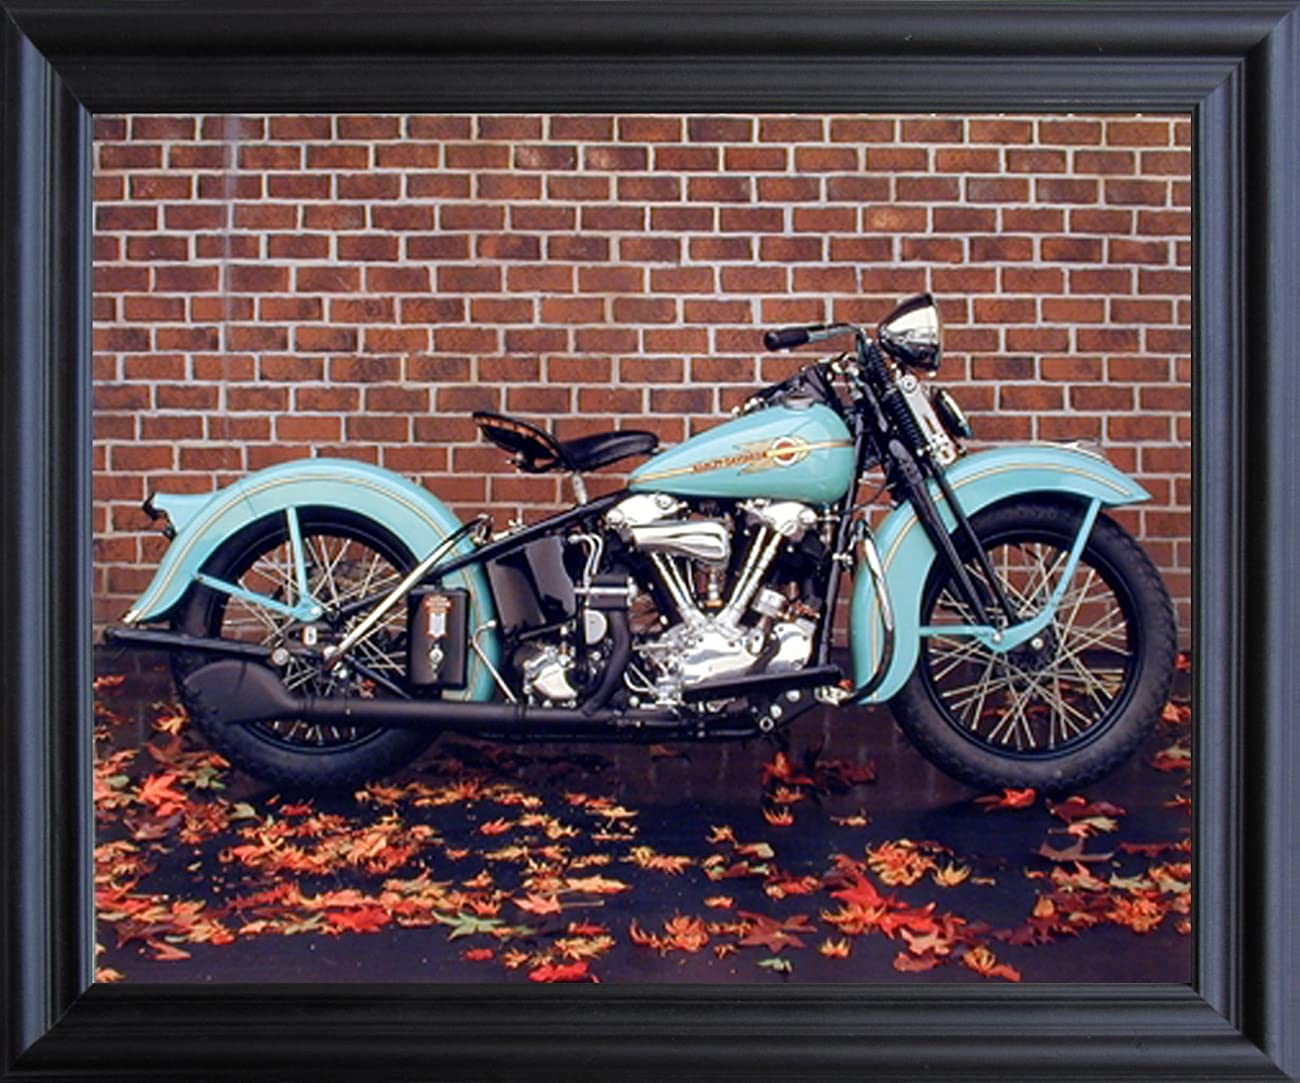 1938 Aqua Harley Davidson Ron Kimball Vintage Motorcycle Wall Black Framed Art Print Picture (19x23) 0